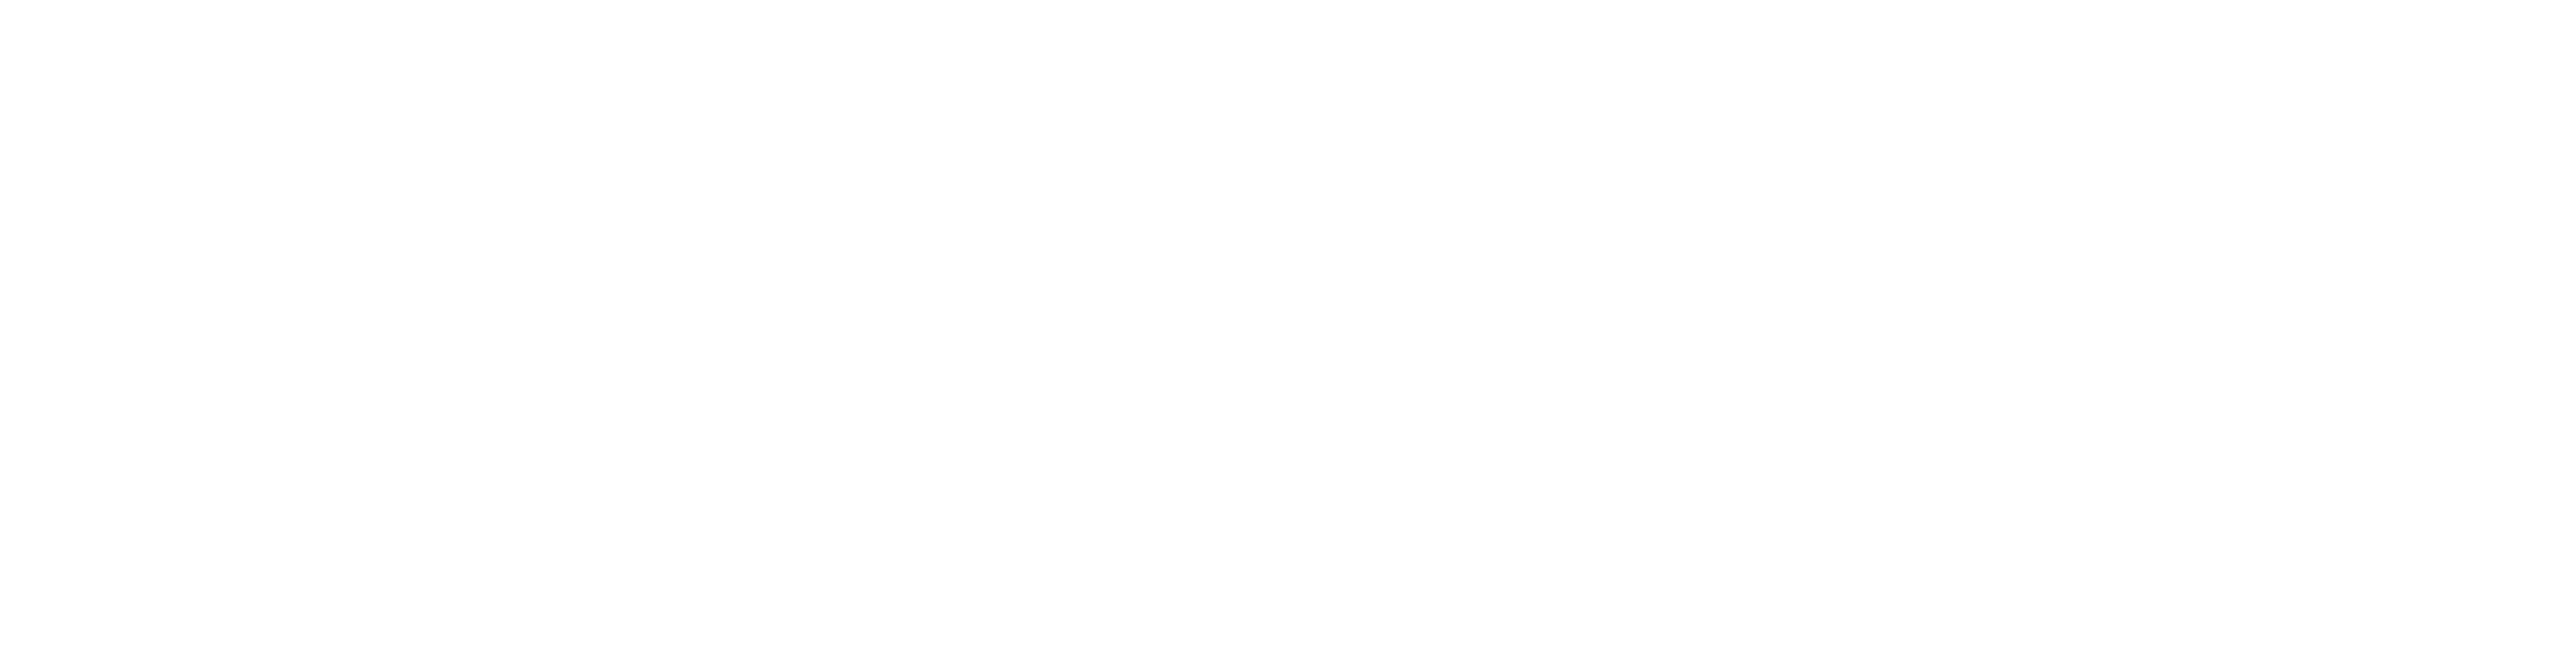 Horizon Pictures Logo